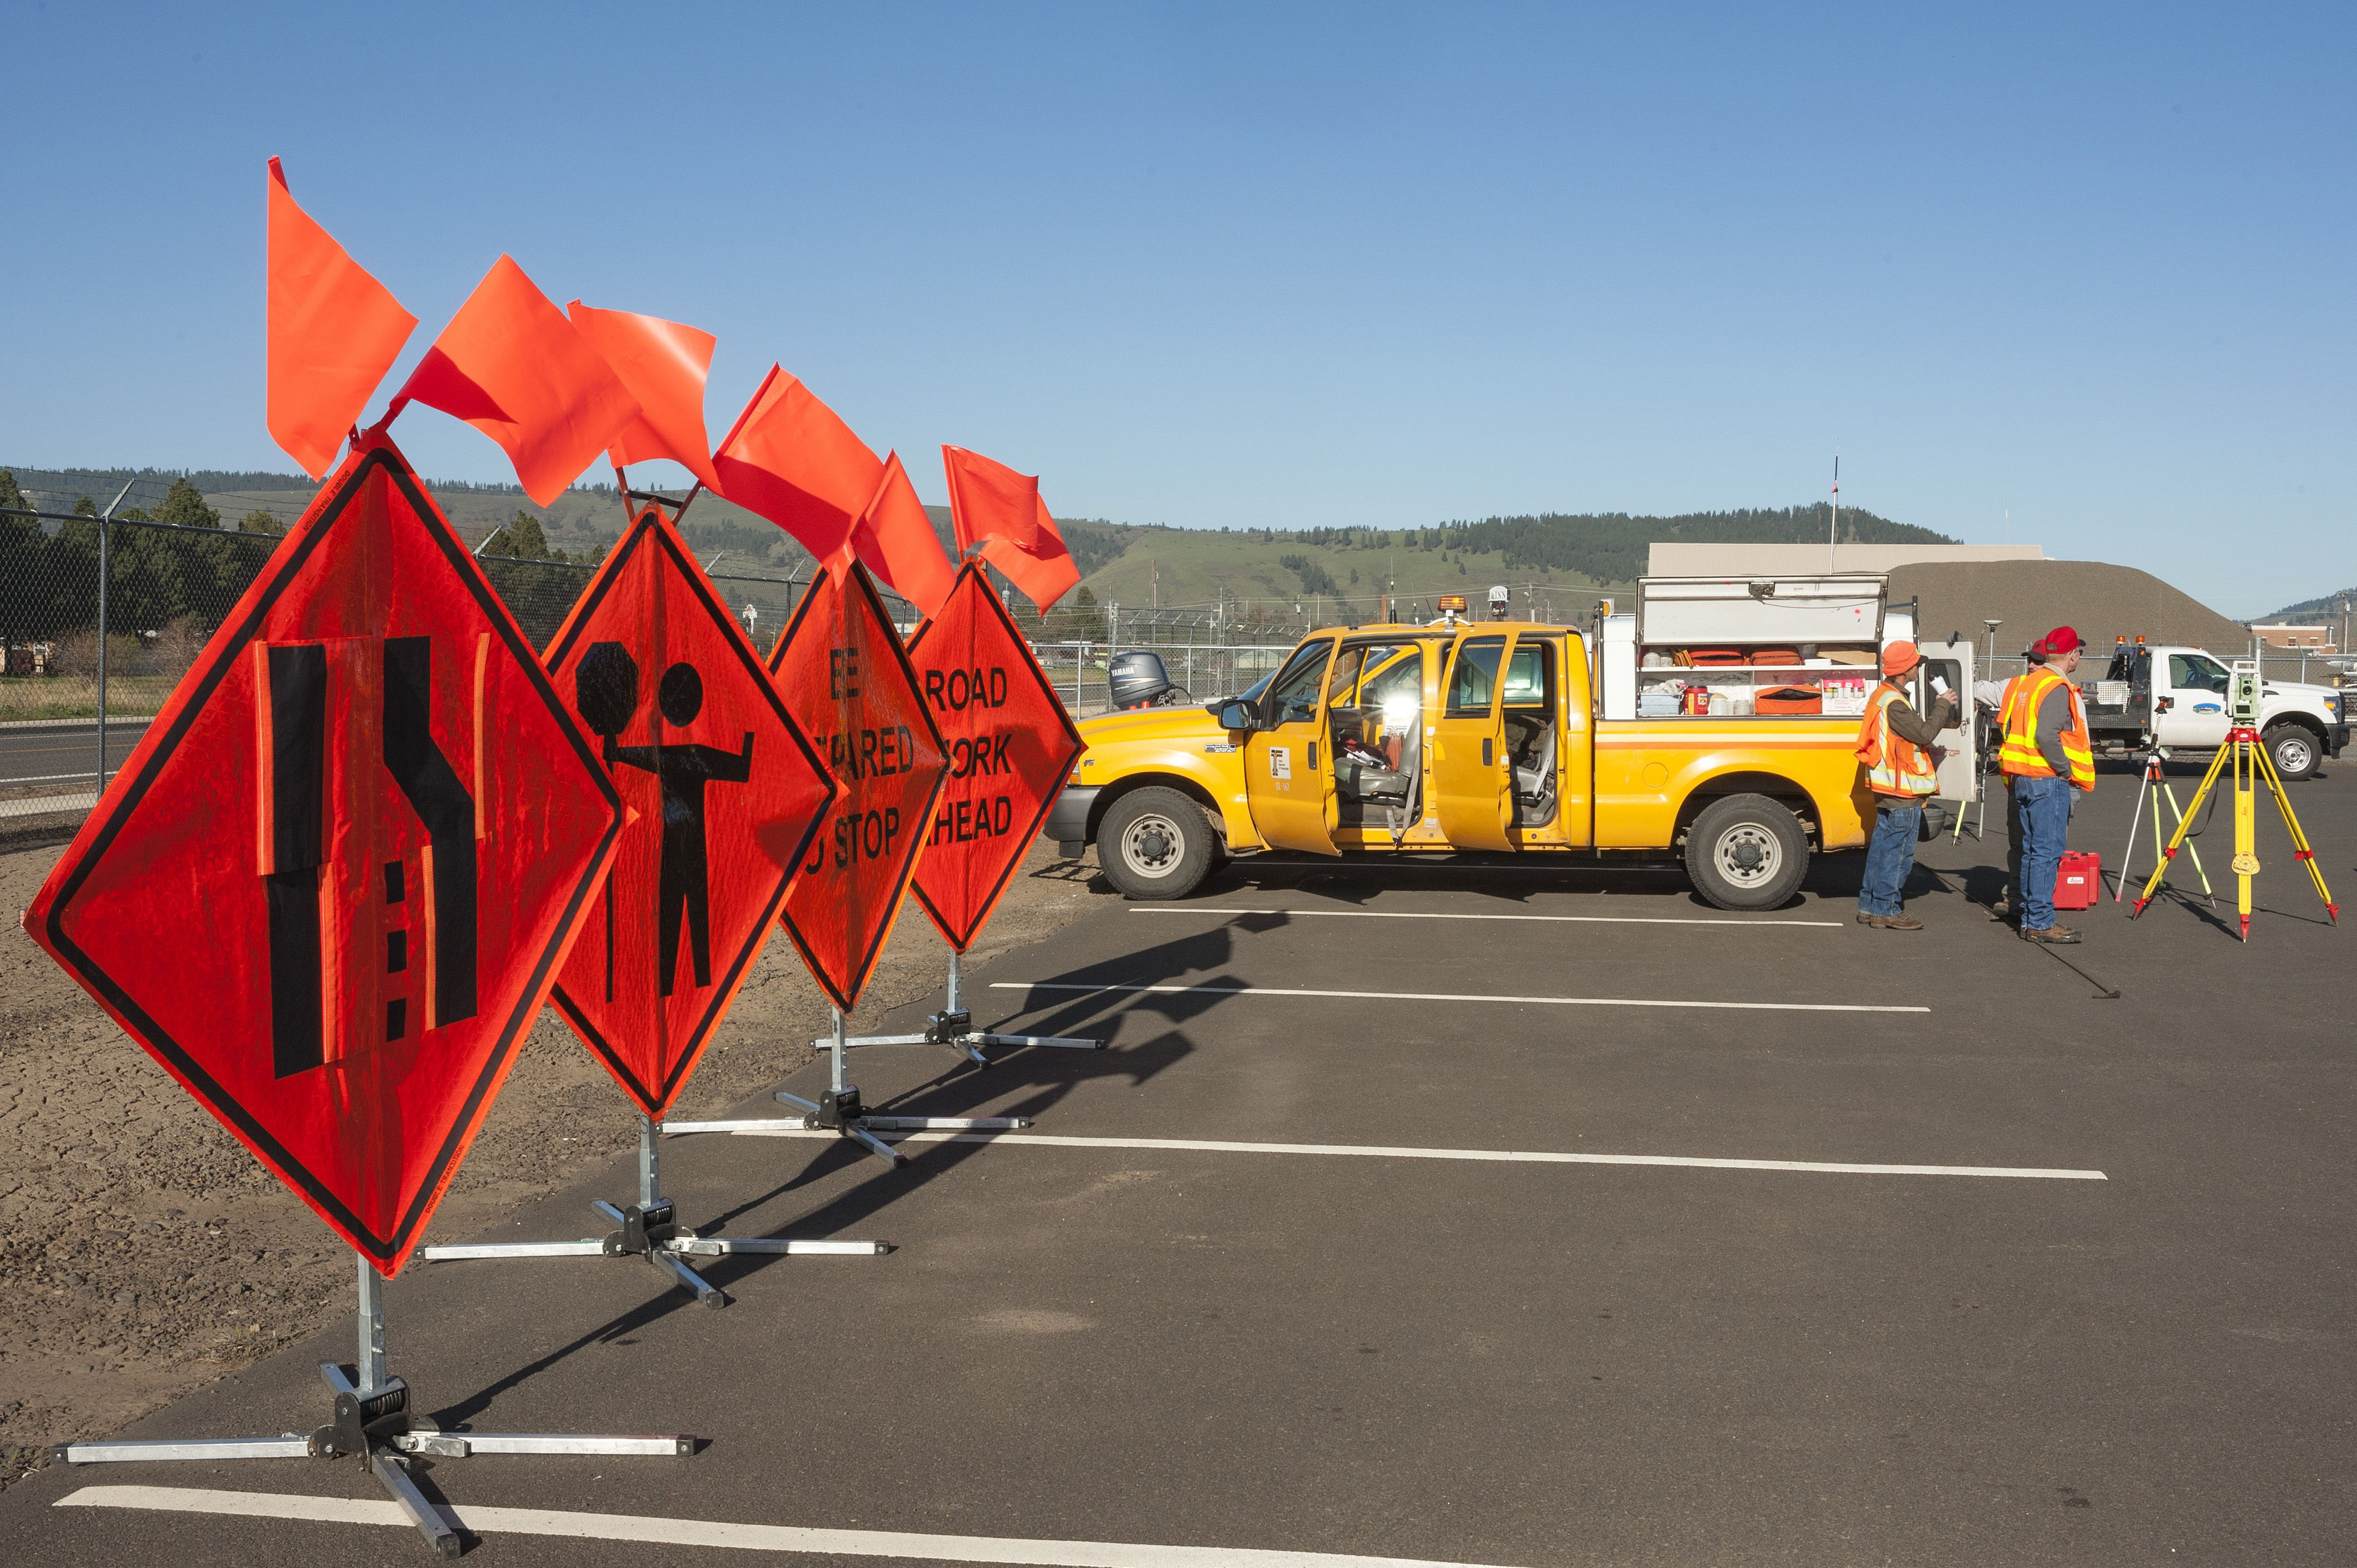 WHAT EVERY DRIVER SHOULD KNOW ABOUT HIGHWAY CONSTRUCTION ZONES